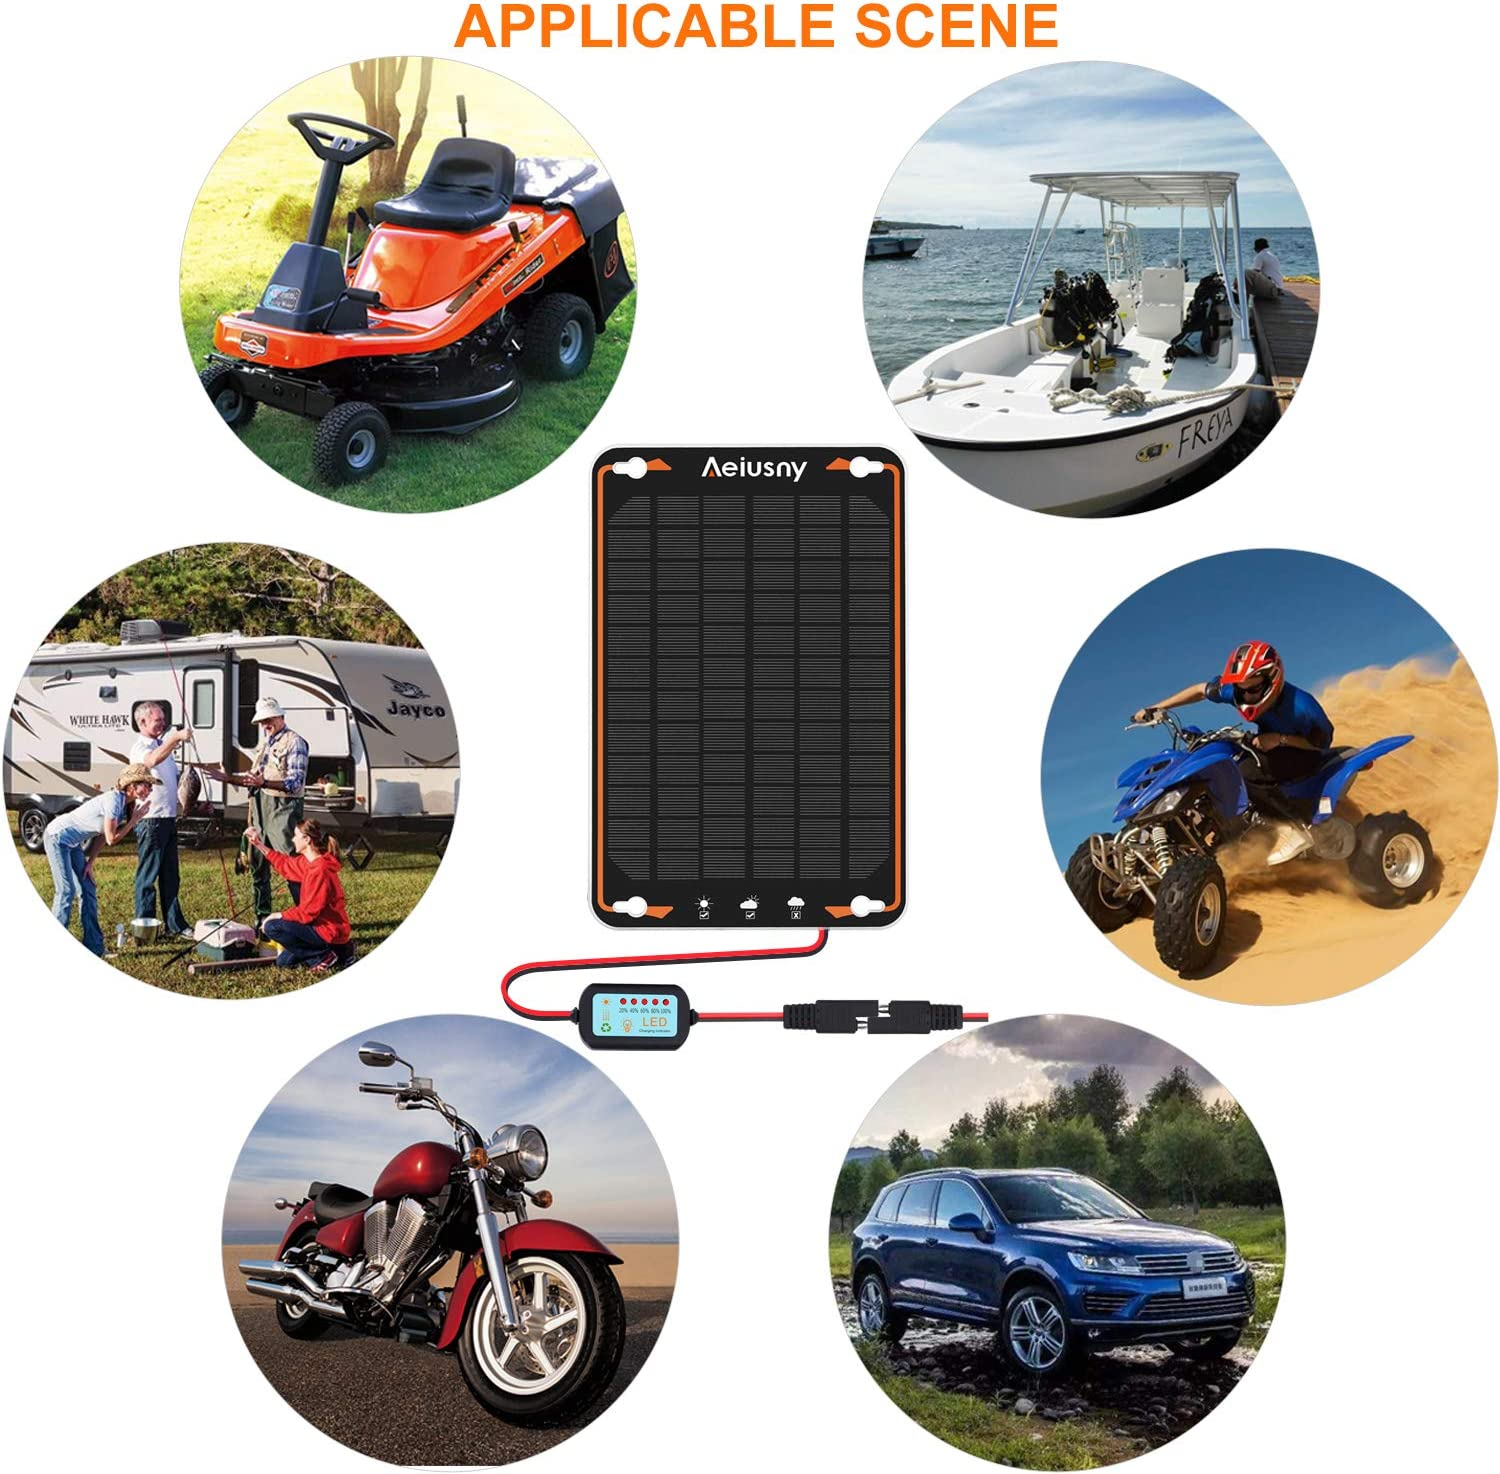 Aeiusny 12V Solar Car Battery Trickle Charger & Maintainer 5W Solar Panel Power Kit Portable Backup for Automotive RV Marine Boat Motorcycle Truck Trailer Tractor Powersports Snowmobile Farm Equipment: Automotive